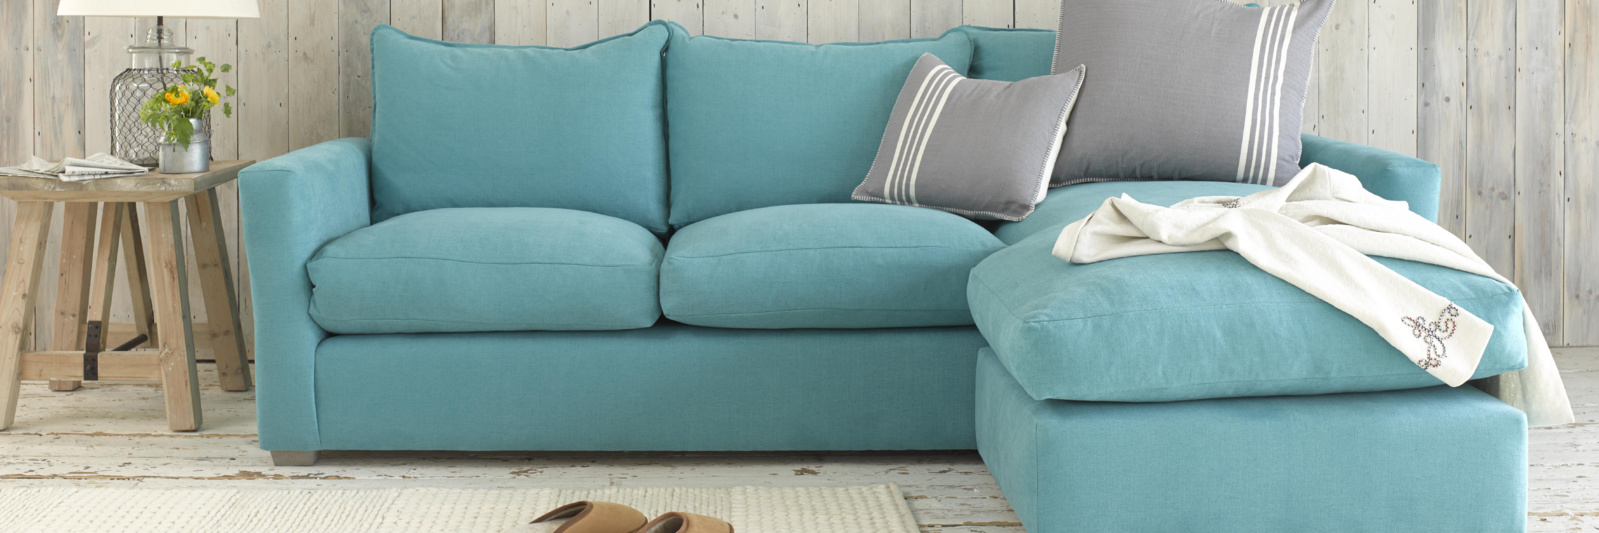 Contemporary British made pavilion corner sofa